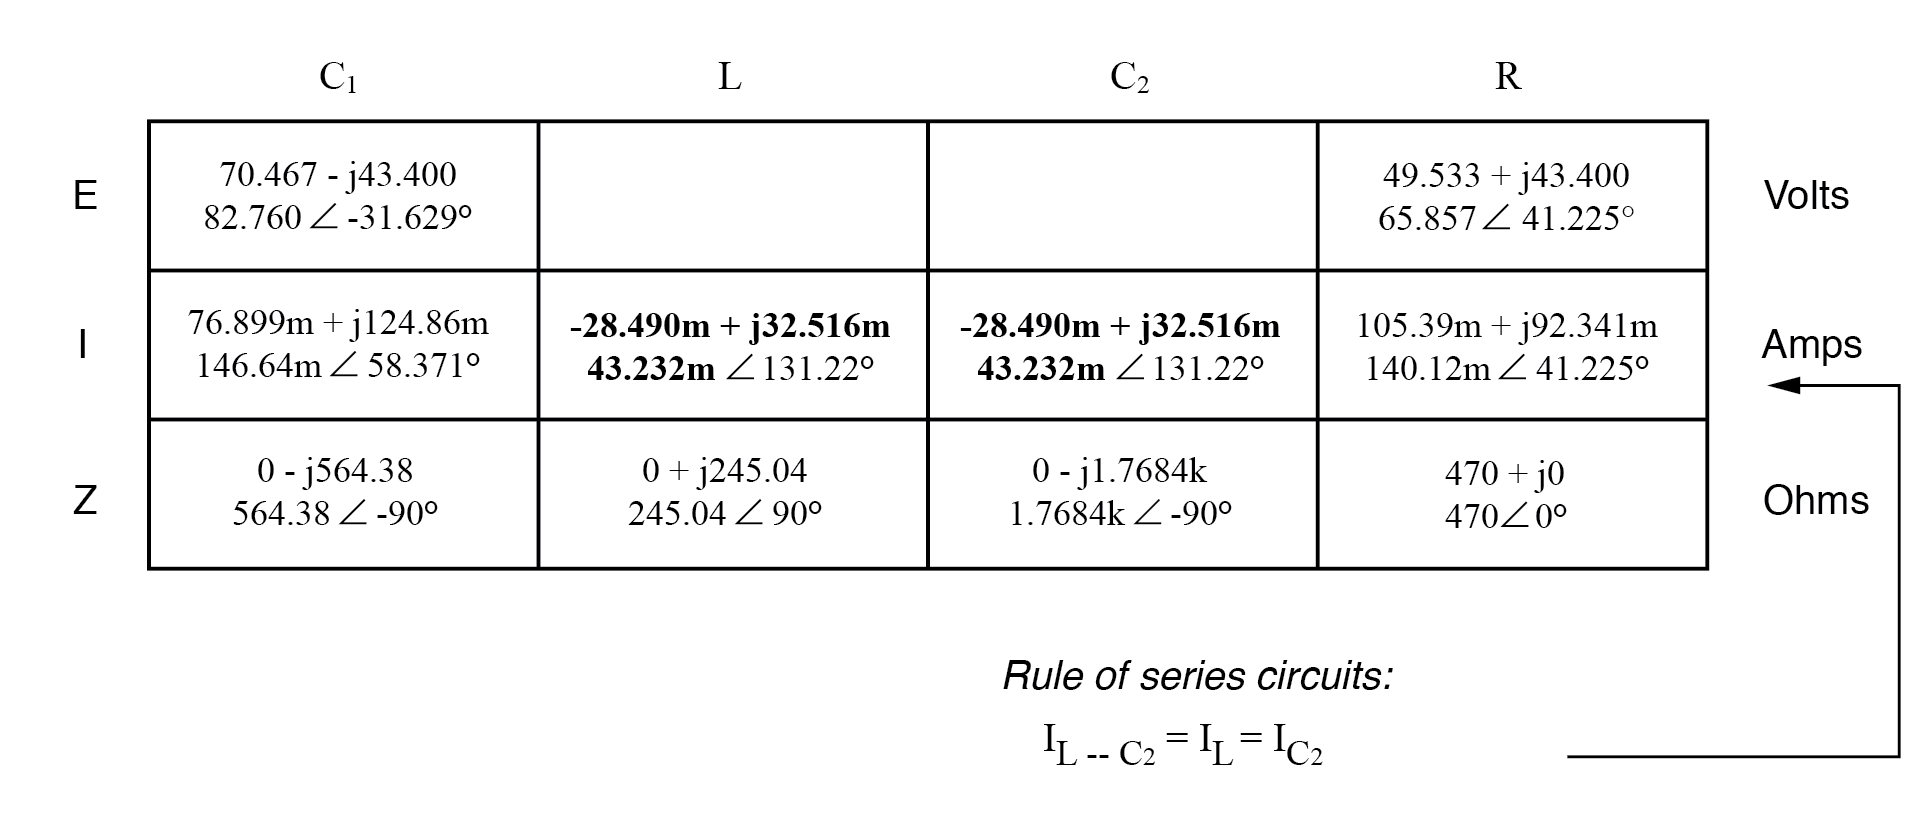 rule of series circuits table 1